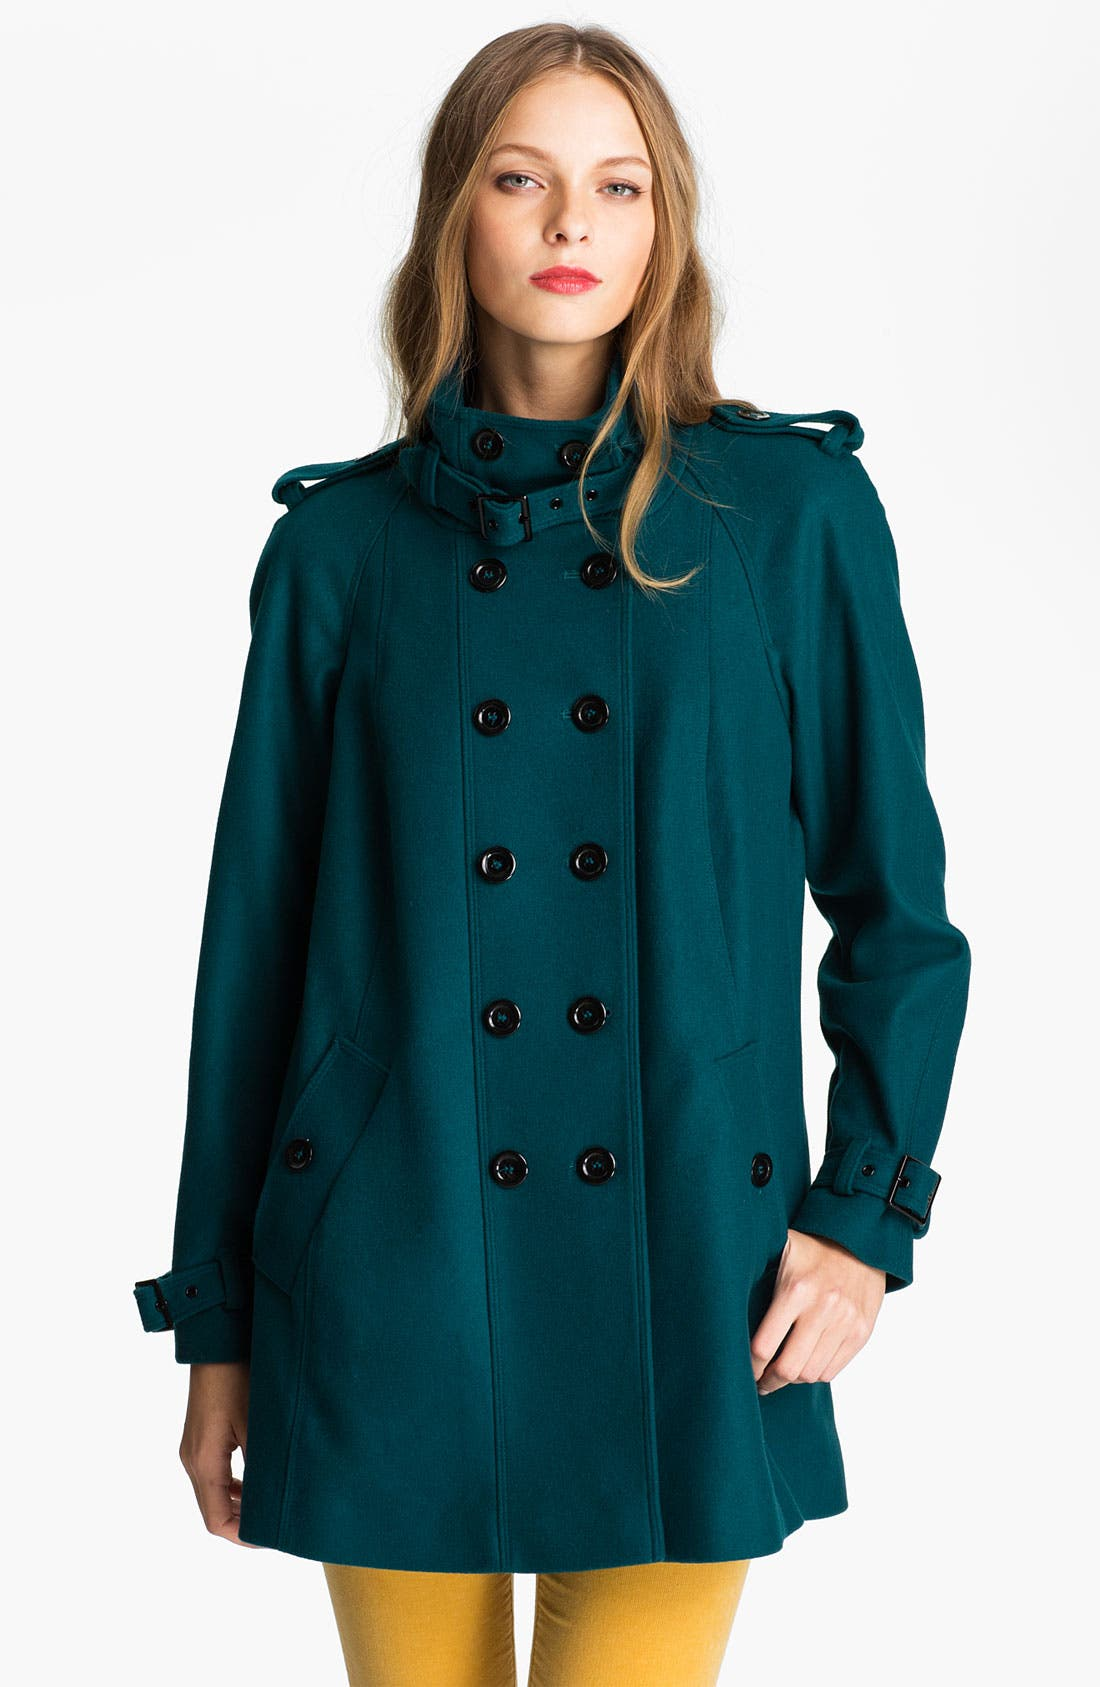 Alternate Image 1 Selected - Nicole Miller Double Breasted Wool Blend Coat